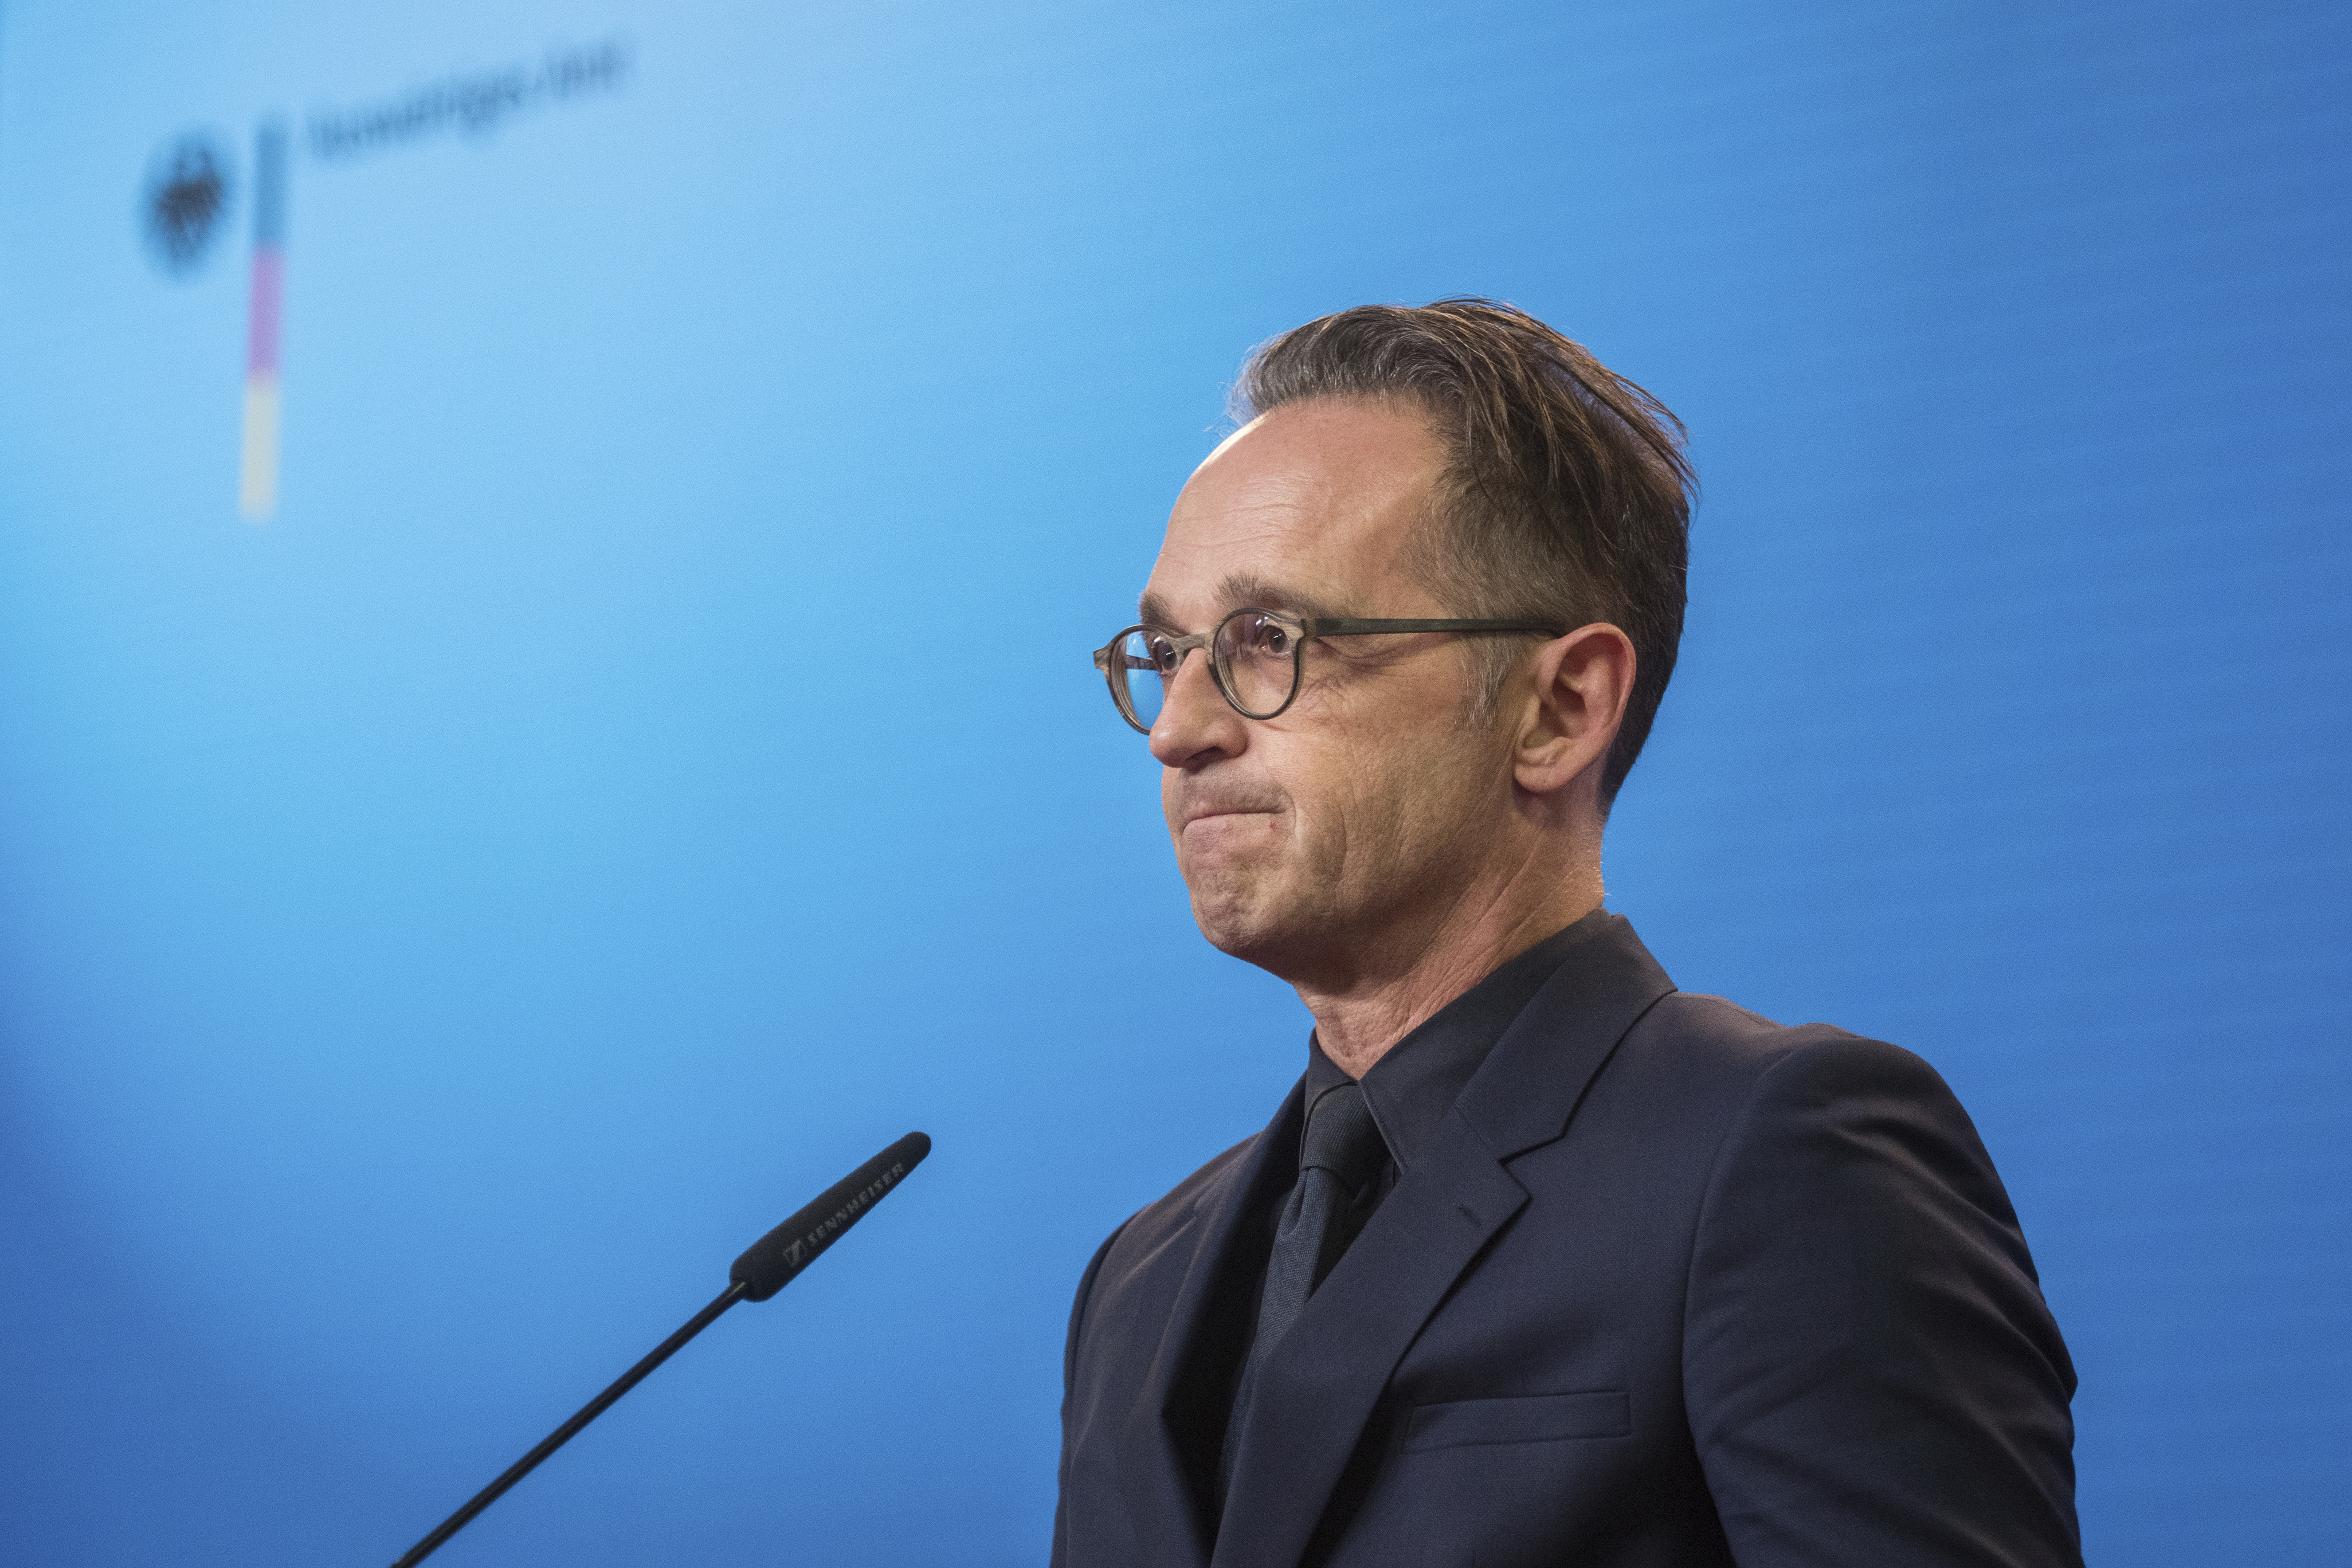 German Foreign Minister Heiko Maas attends a press conference at the Foreign Ministry in Berlin, Germany on Sept. 2, 2020.